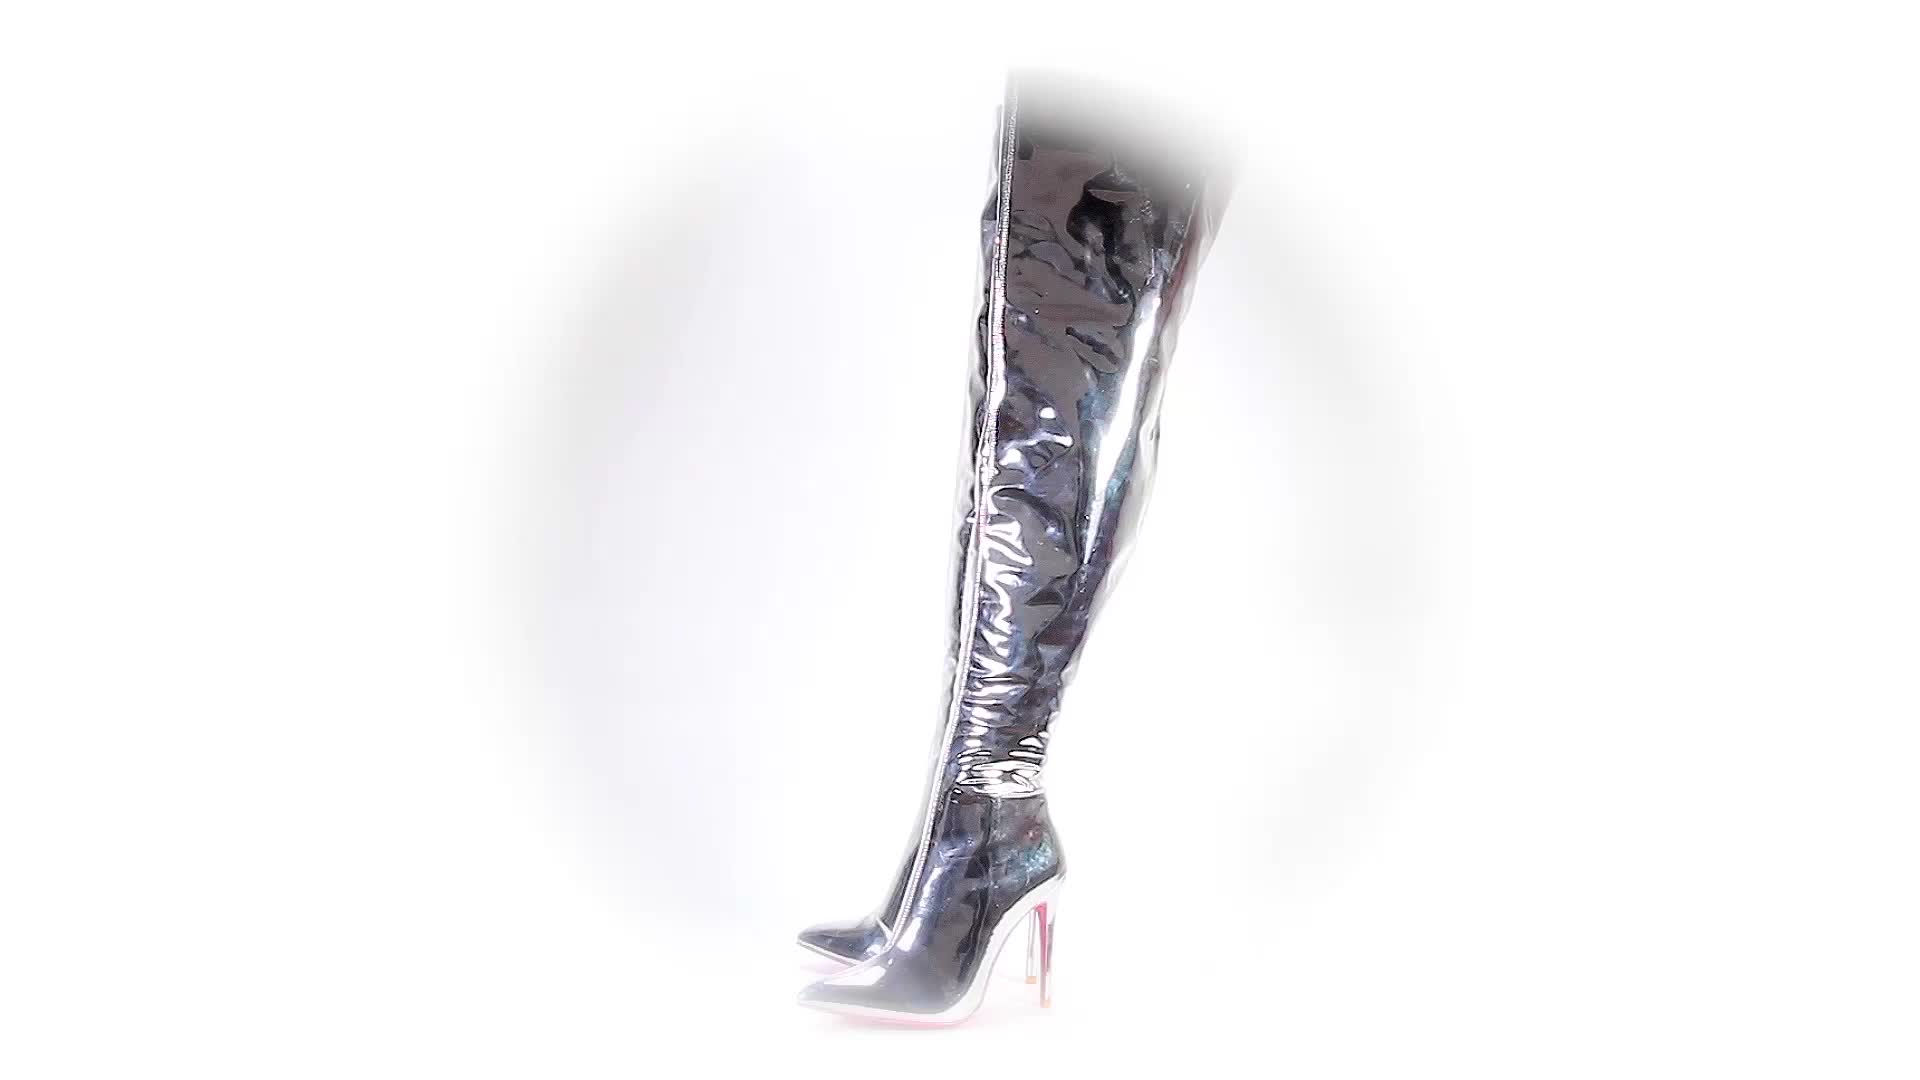 Silver Sexy sexy Tube Heels Foot Boots Girls Latex Boots Heels Thigh High Buy Product Fetish sexy lFKT1J3c